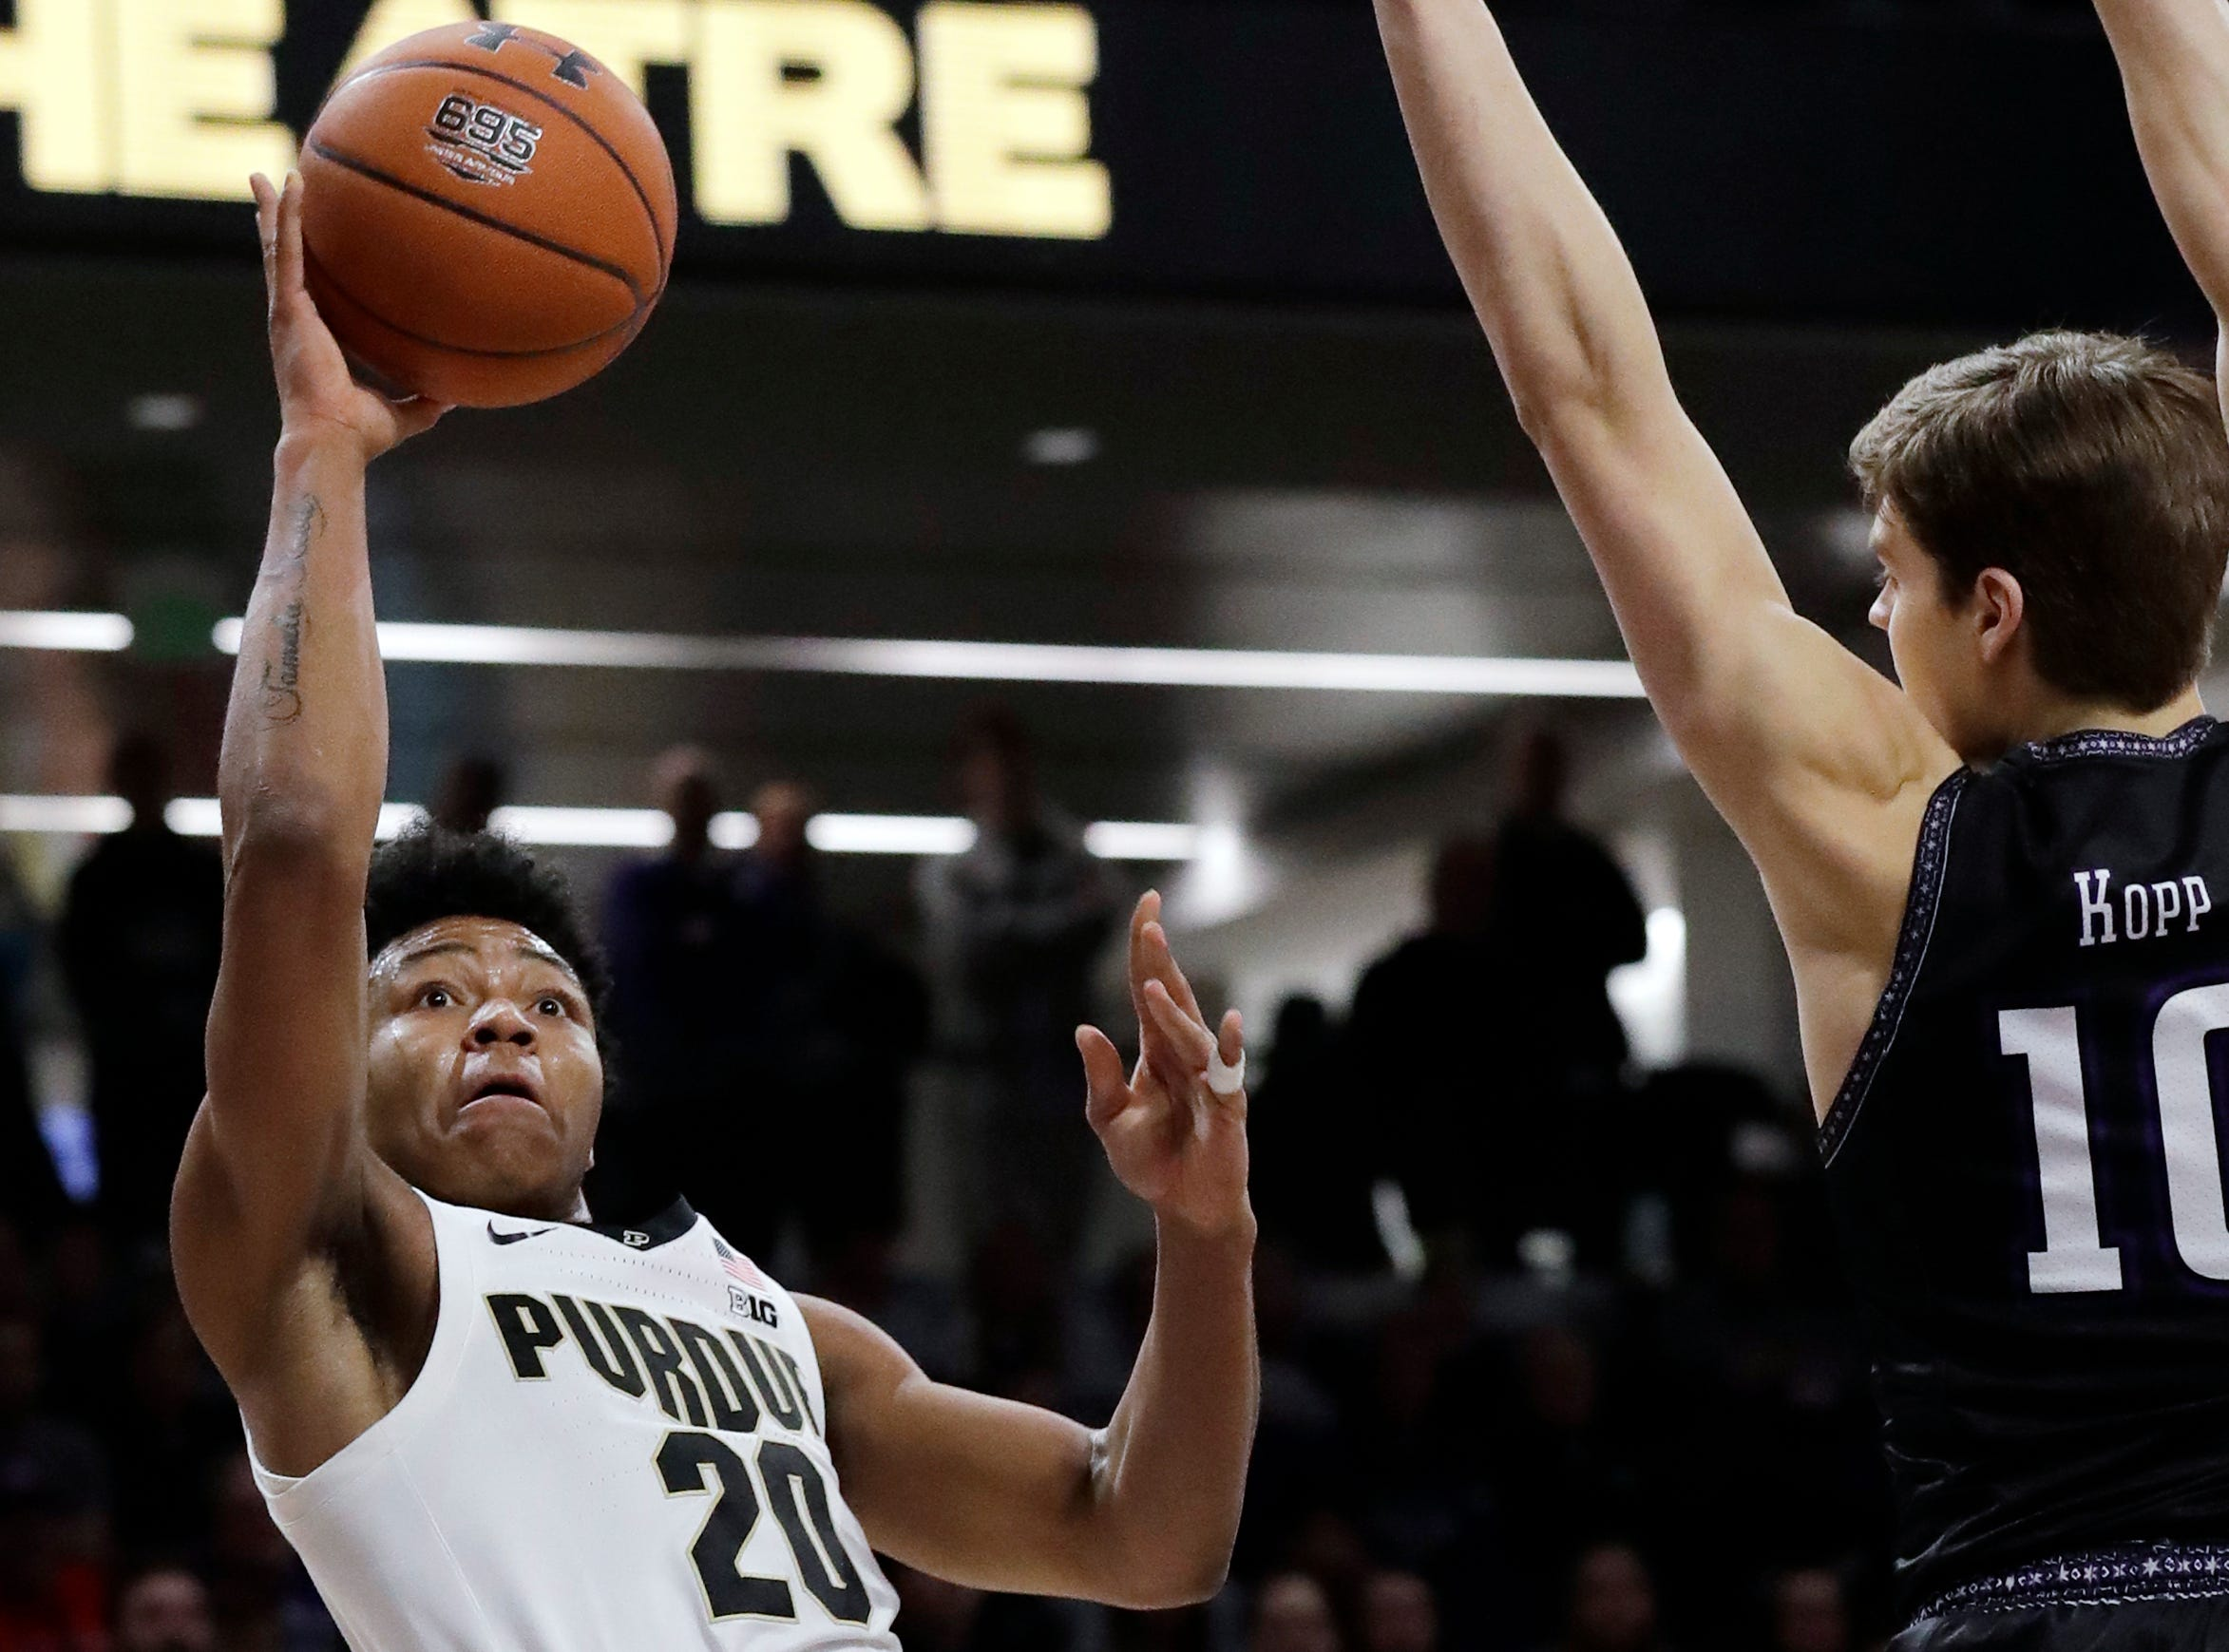 Purdue guard Nojel Eastern, left, shoots against Northwestern forward Miller Kopp during the first half of an NCAA college basketball game Saturday, March 9, 2019, in Evanston, Ill.